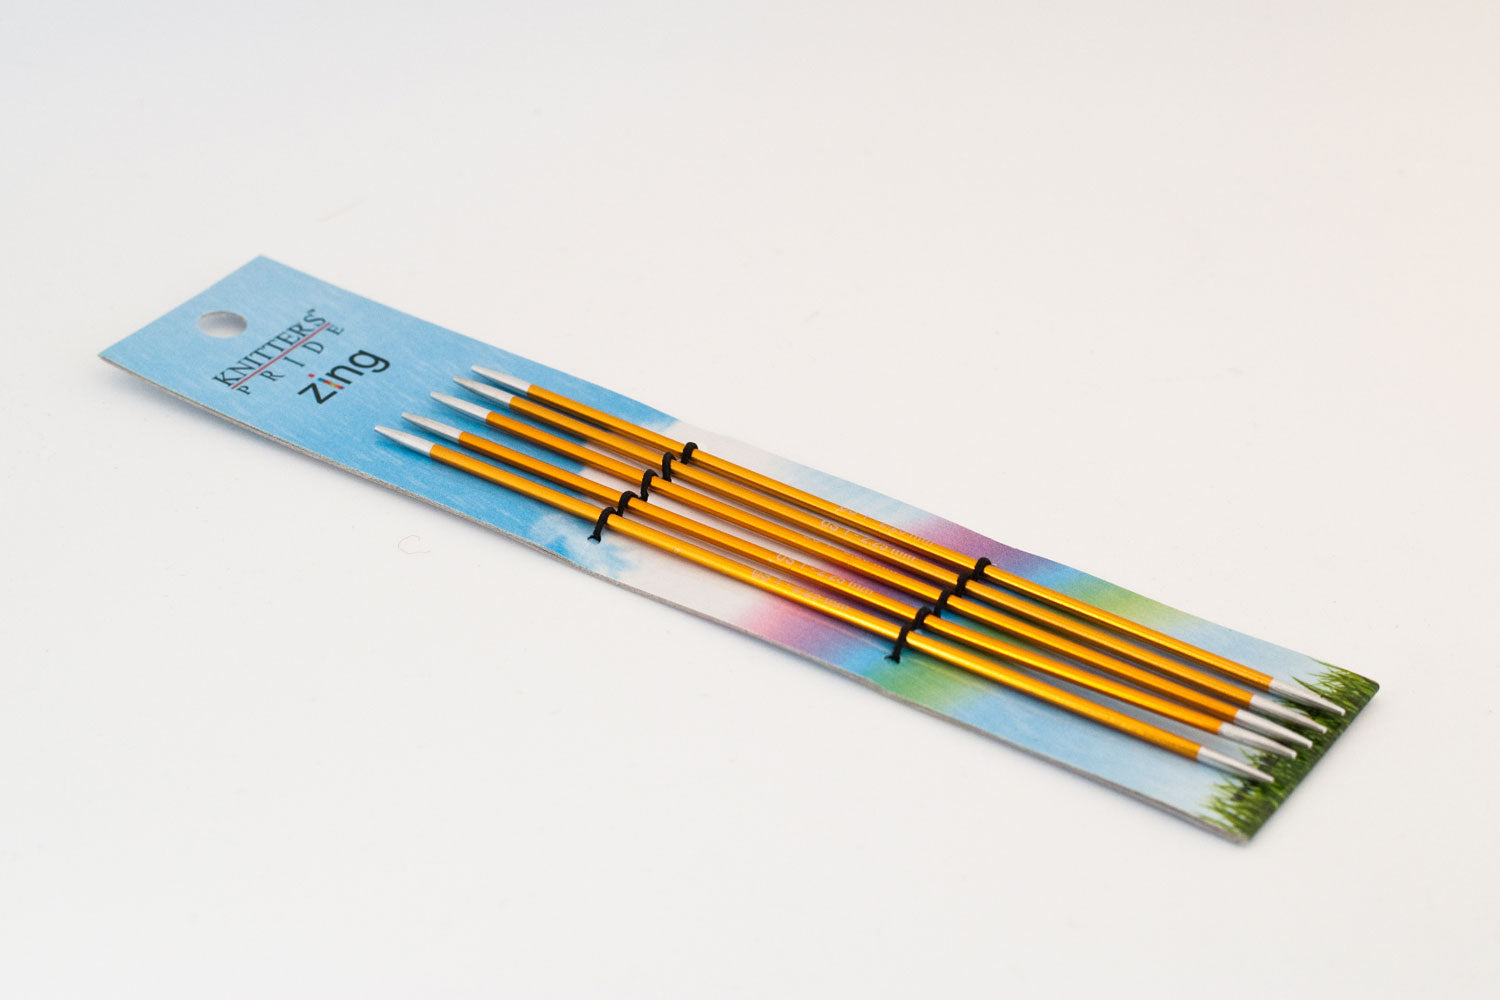 Double-Pointed Knitting Needles